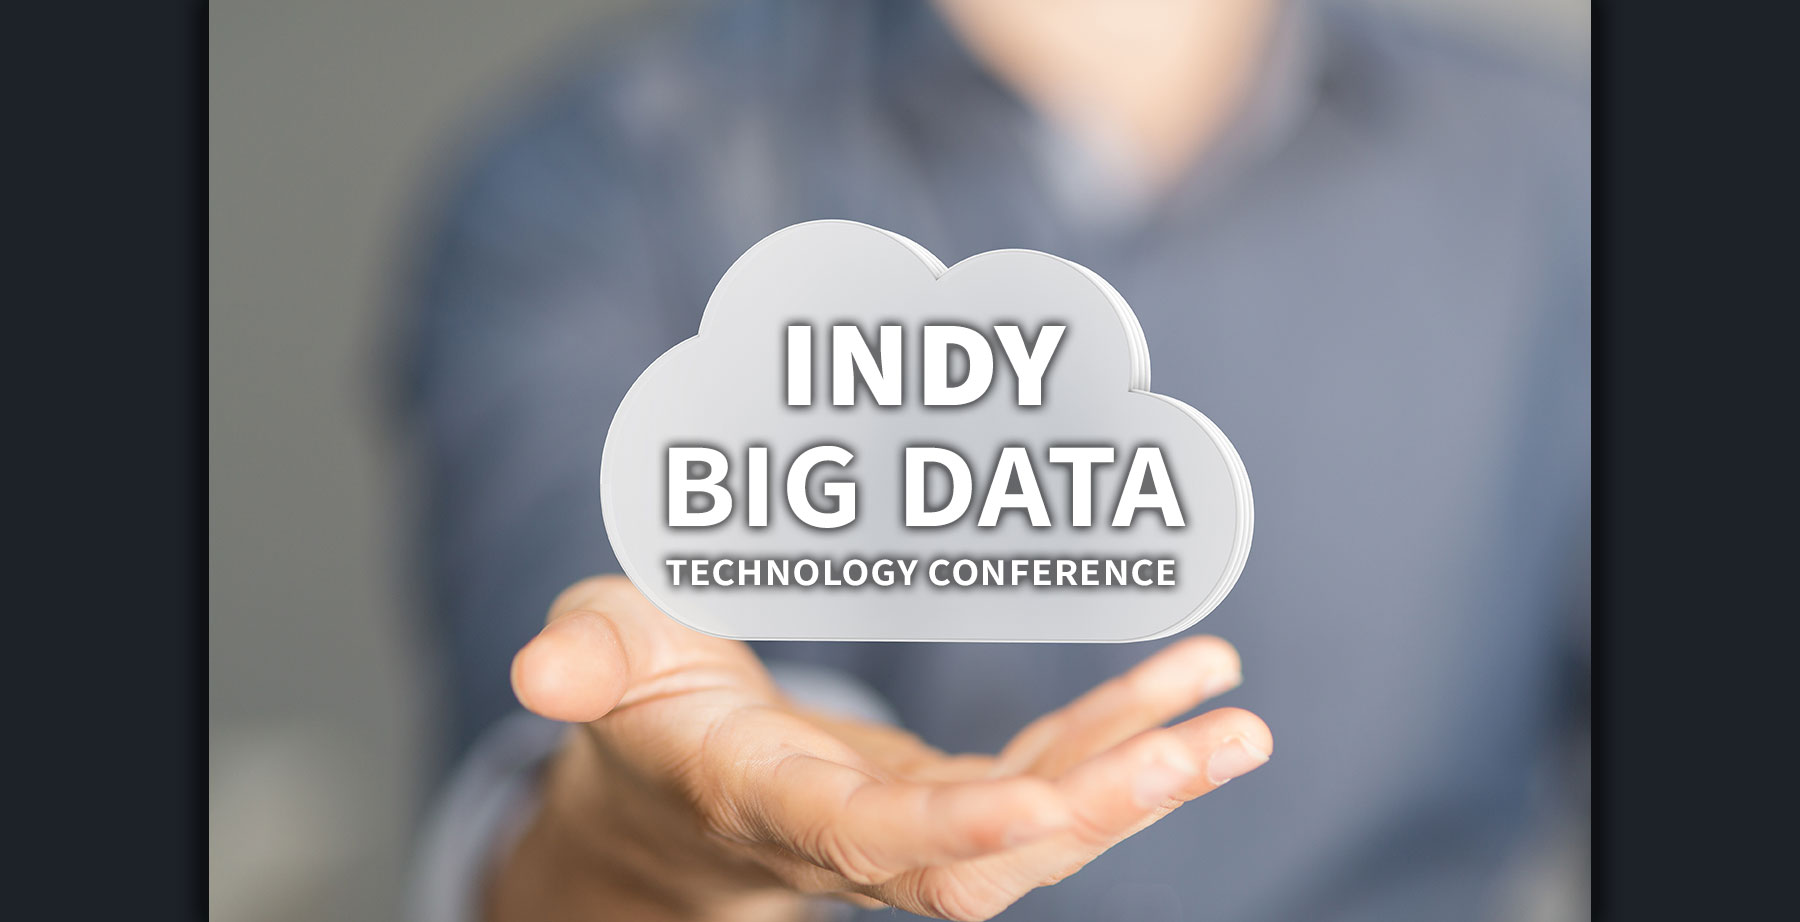 Indy Big Data Technology Conference